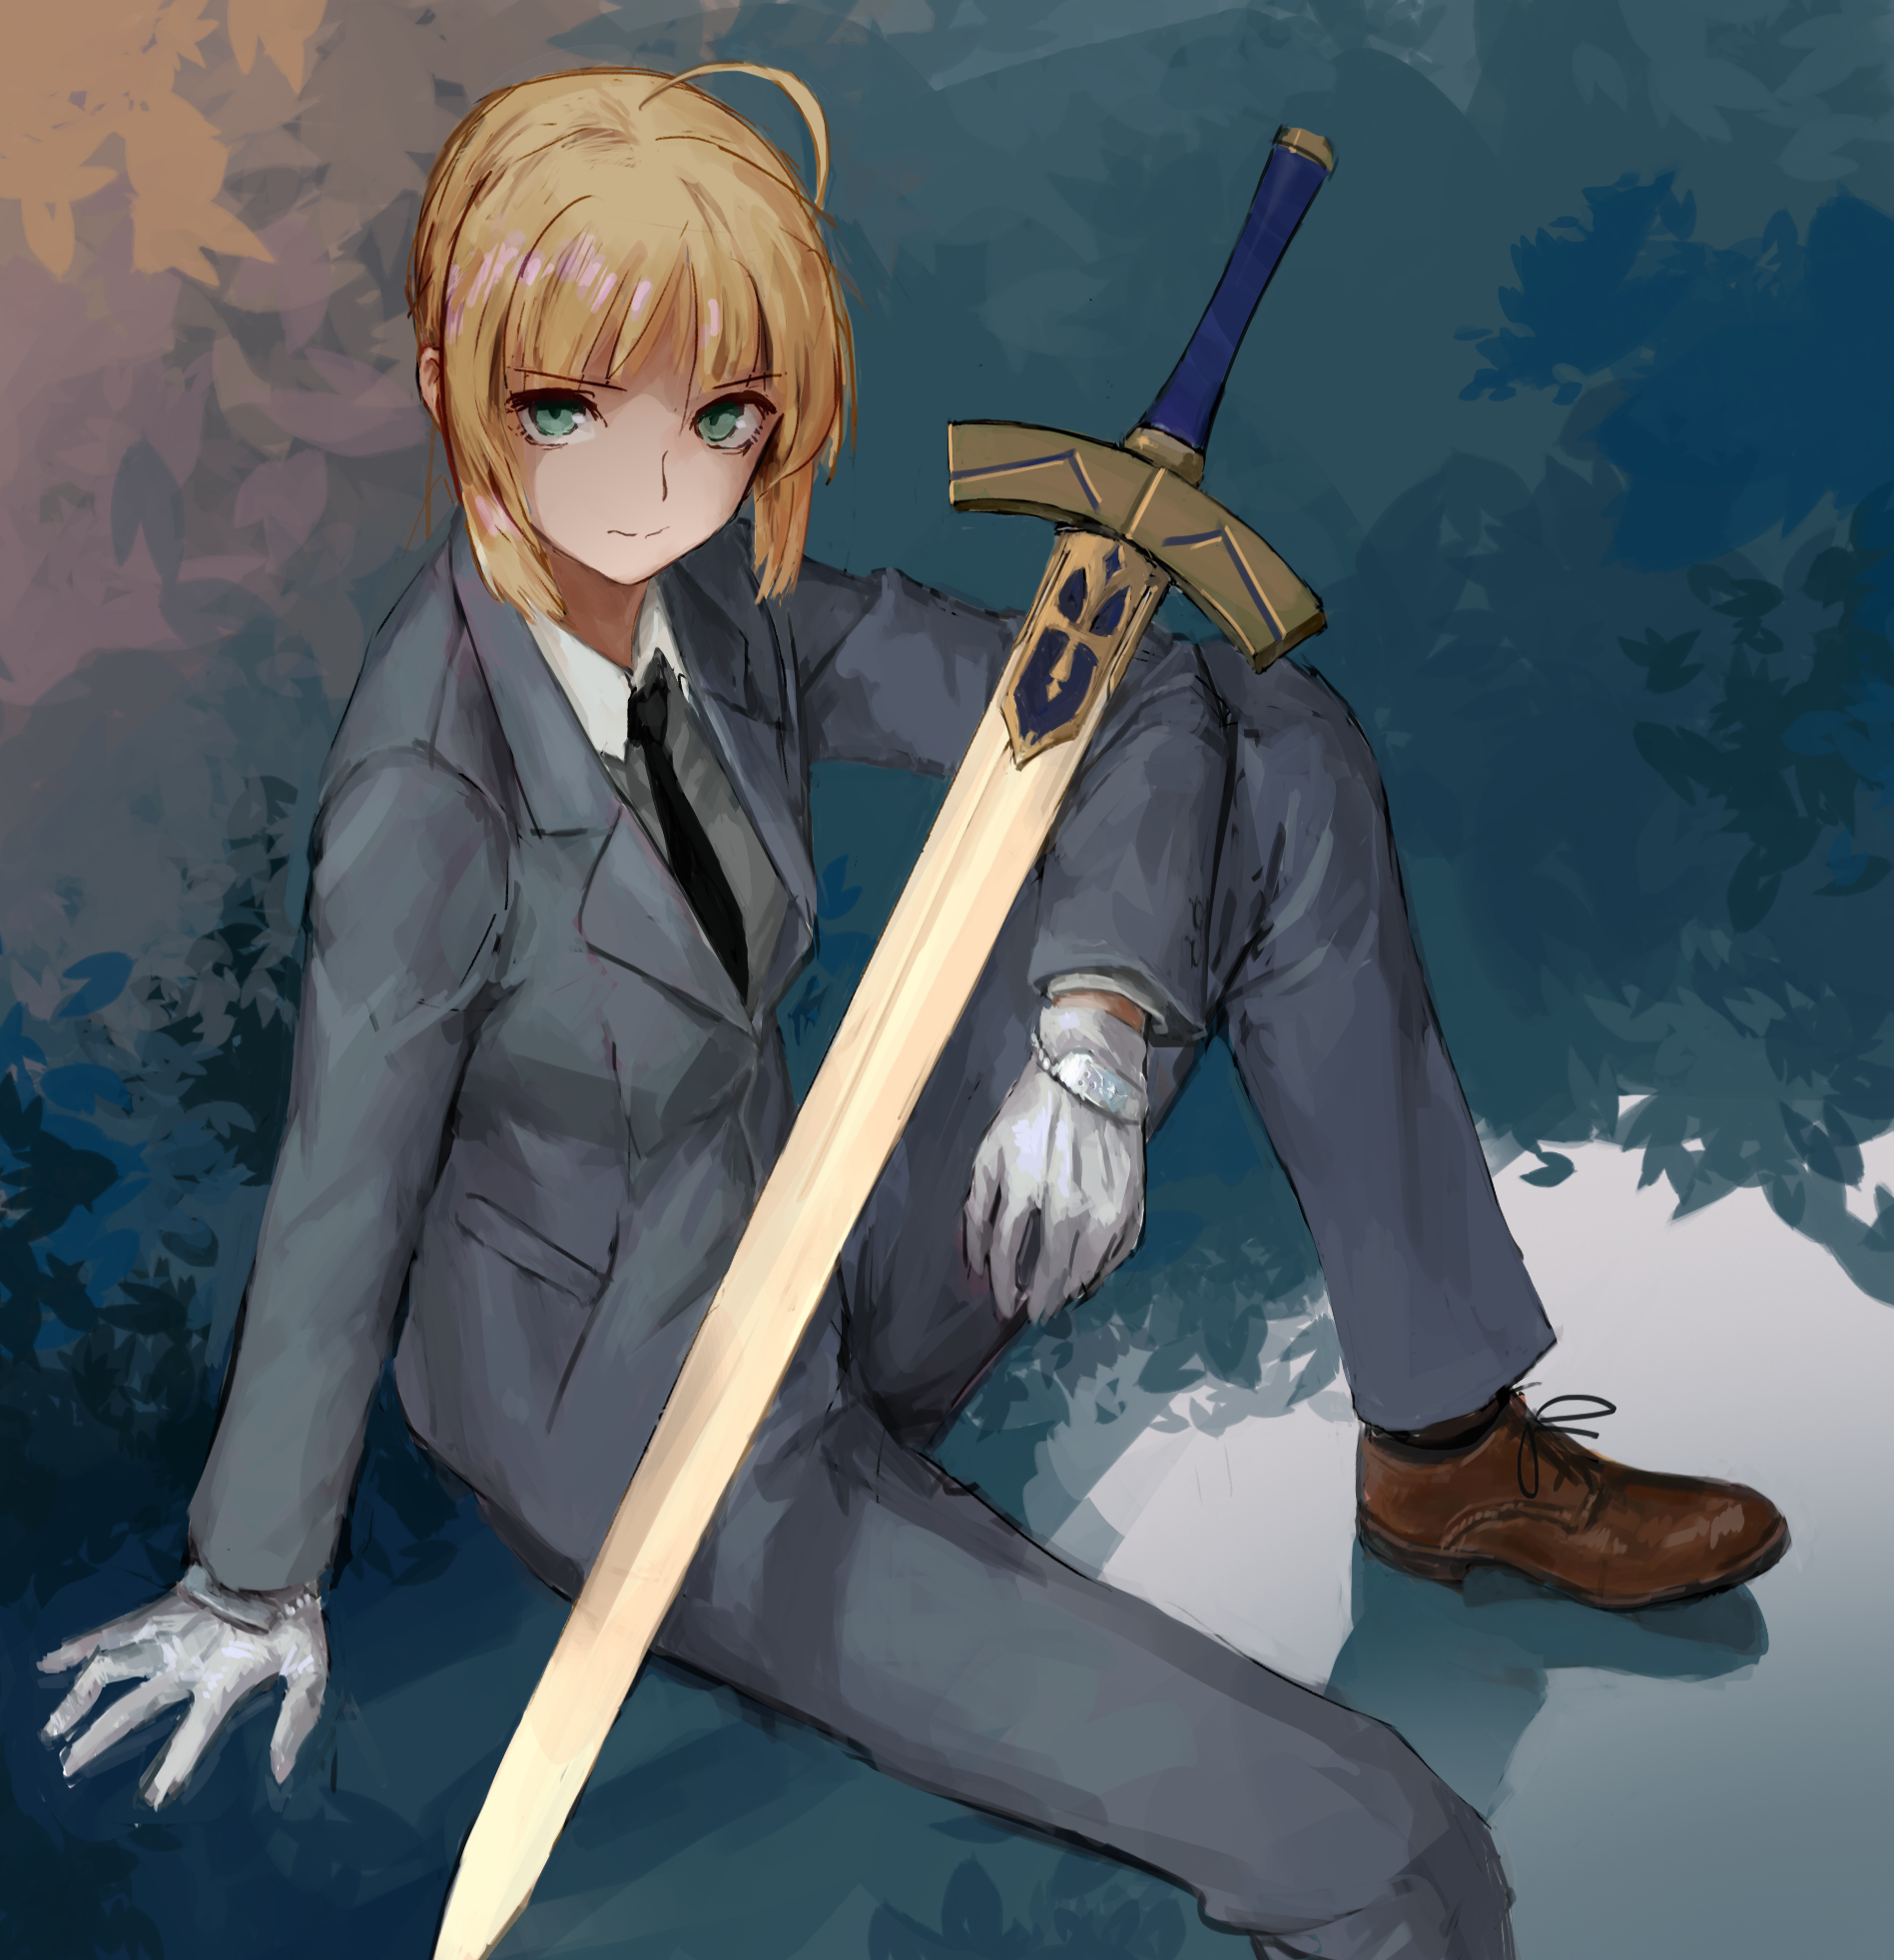 saber fatestay night image 2076160 zerochan anime